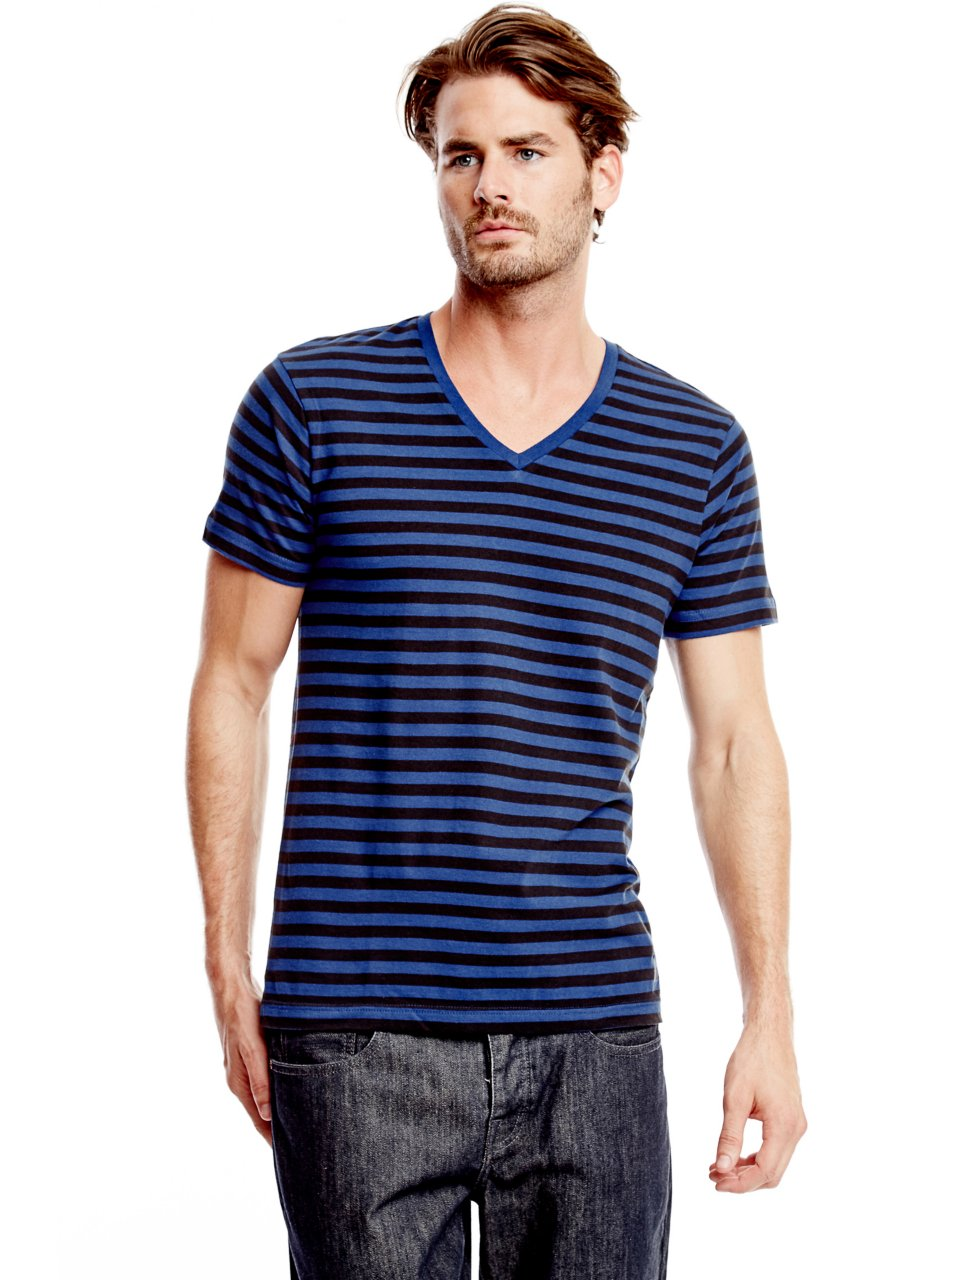 Shop the Latest Collection of Stripe T-Shirts for Men Online at eternal-sv.tk FREE SHIPPING AVAILABLE! Macy's Presents: The Edit- A curated mix of fashion and inspiration Check It Out. Free Shipping with $49 purchase + Free Store Pickup. Contiguous US. American Rag Men's V-Neck Striped T-Shirt, Created for Macy's.